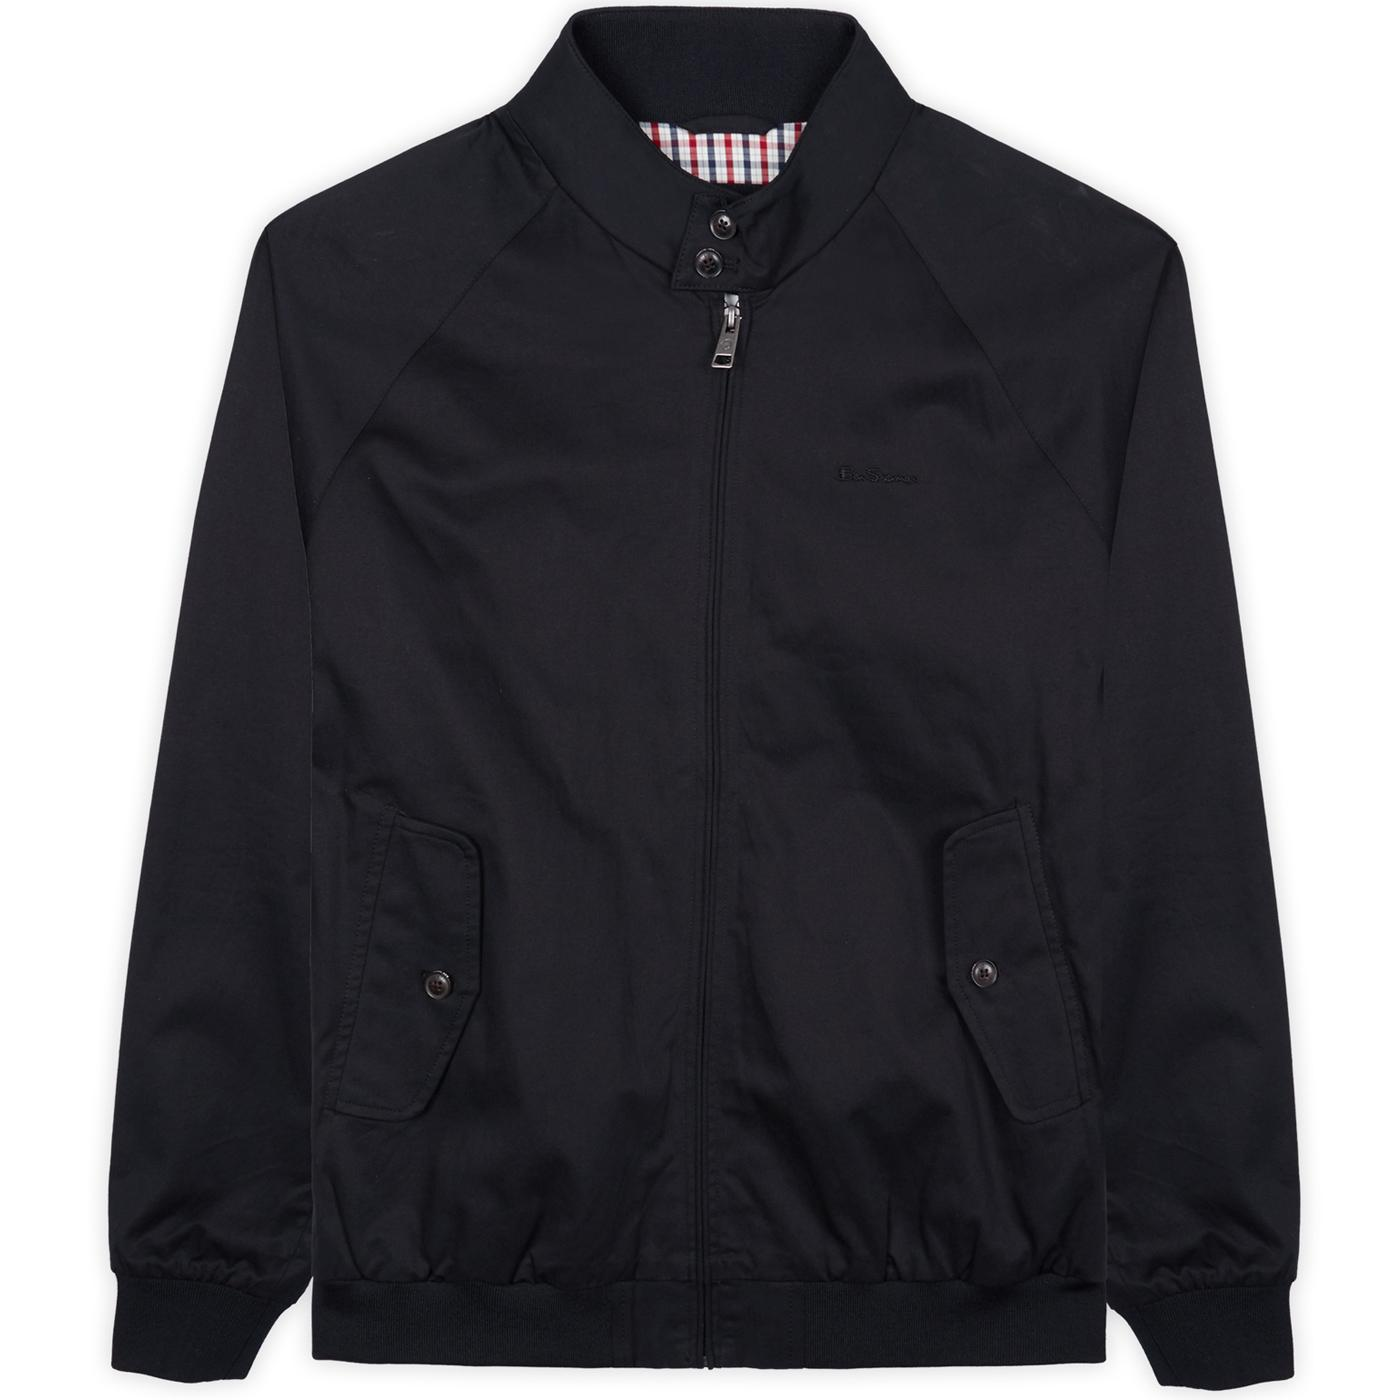 BEN SHERMAN Mod Signature Harrington Jacket BLACK